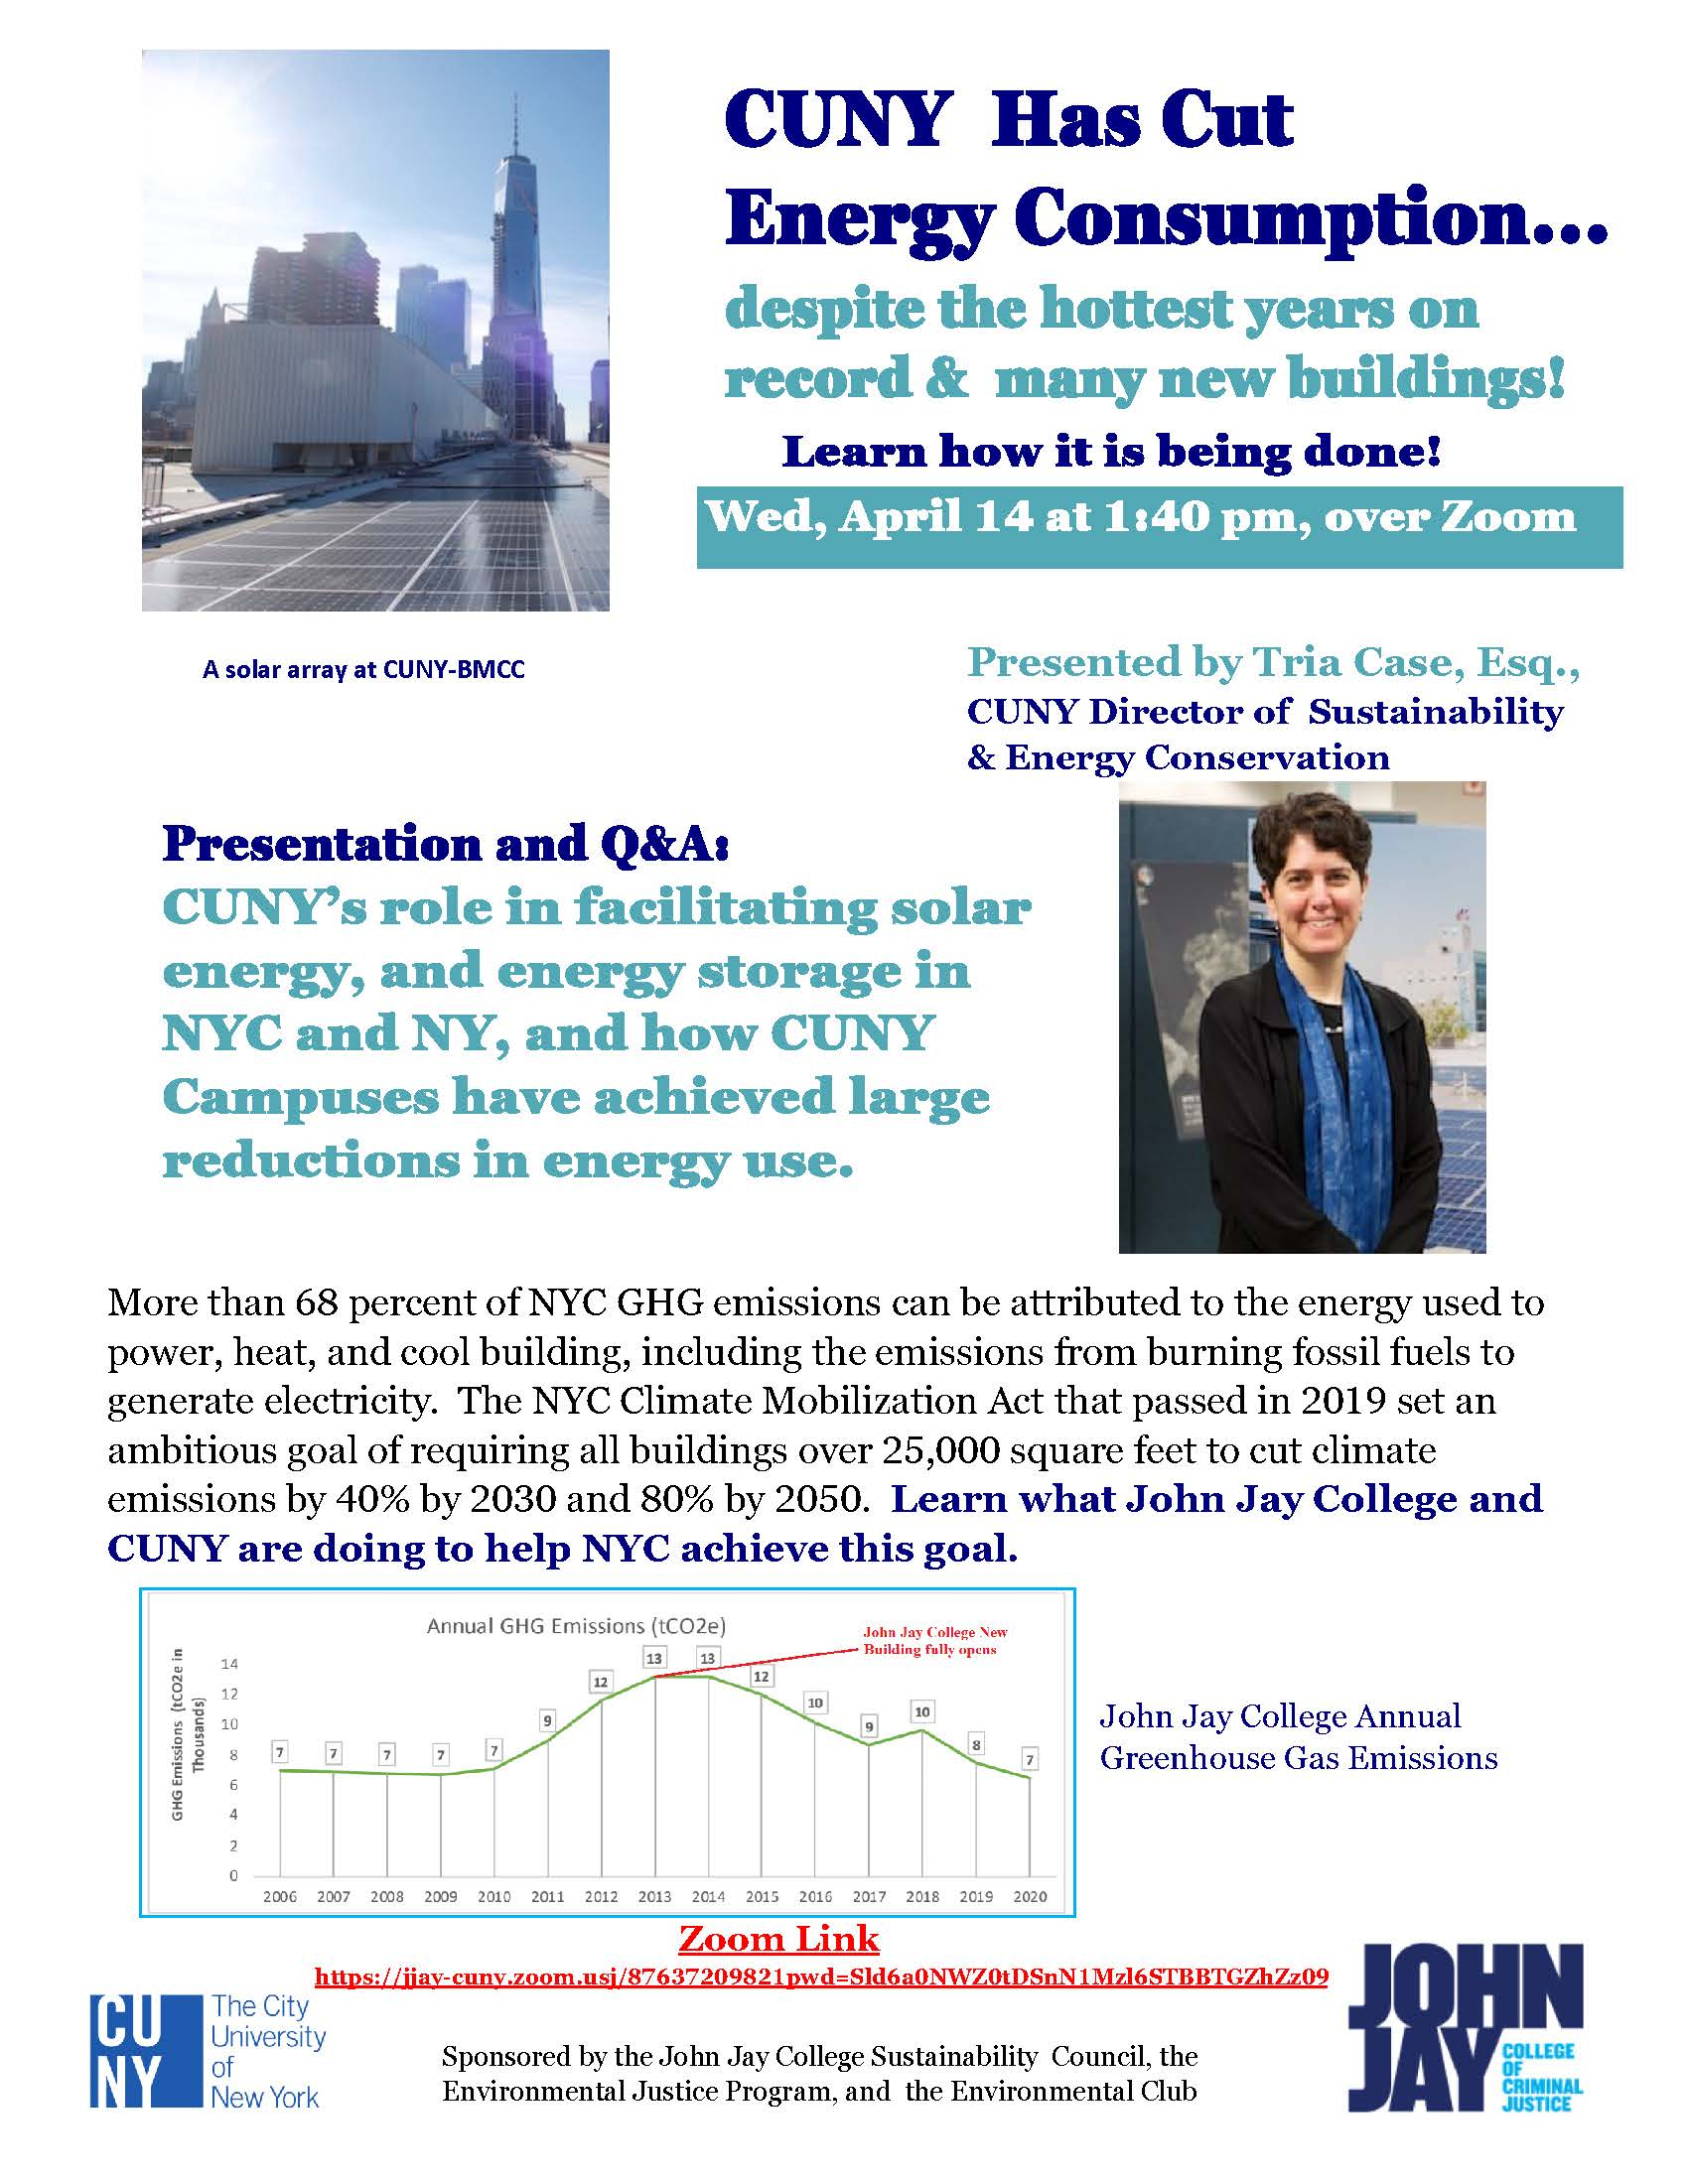 How CUNY is Reducing Emissions 40%